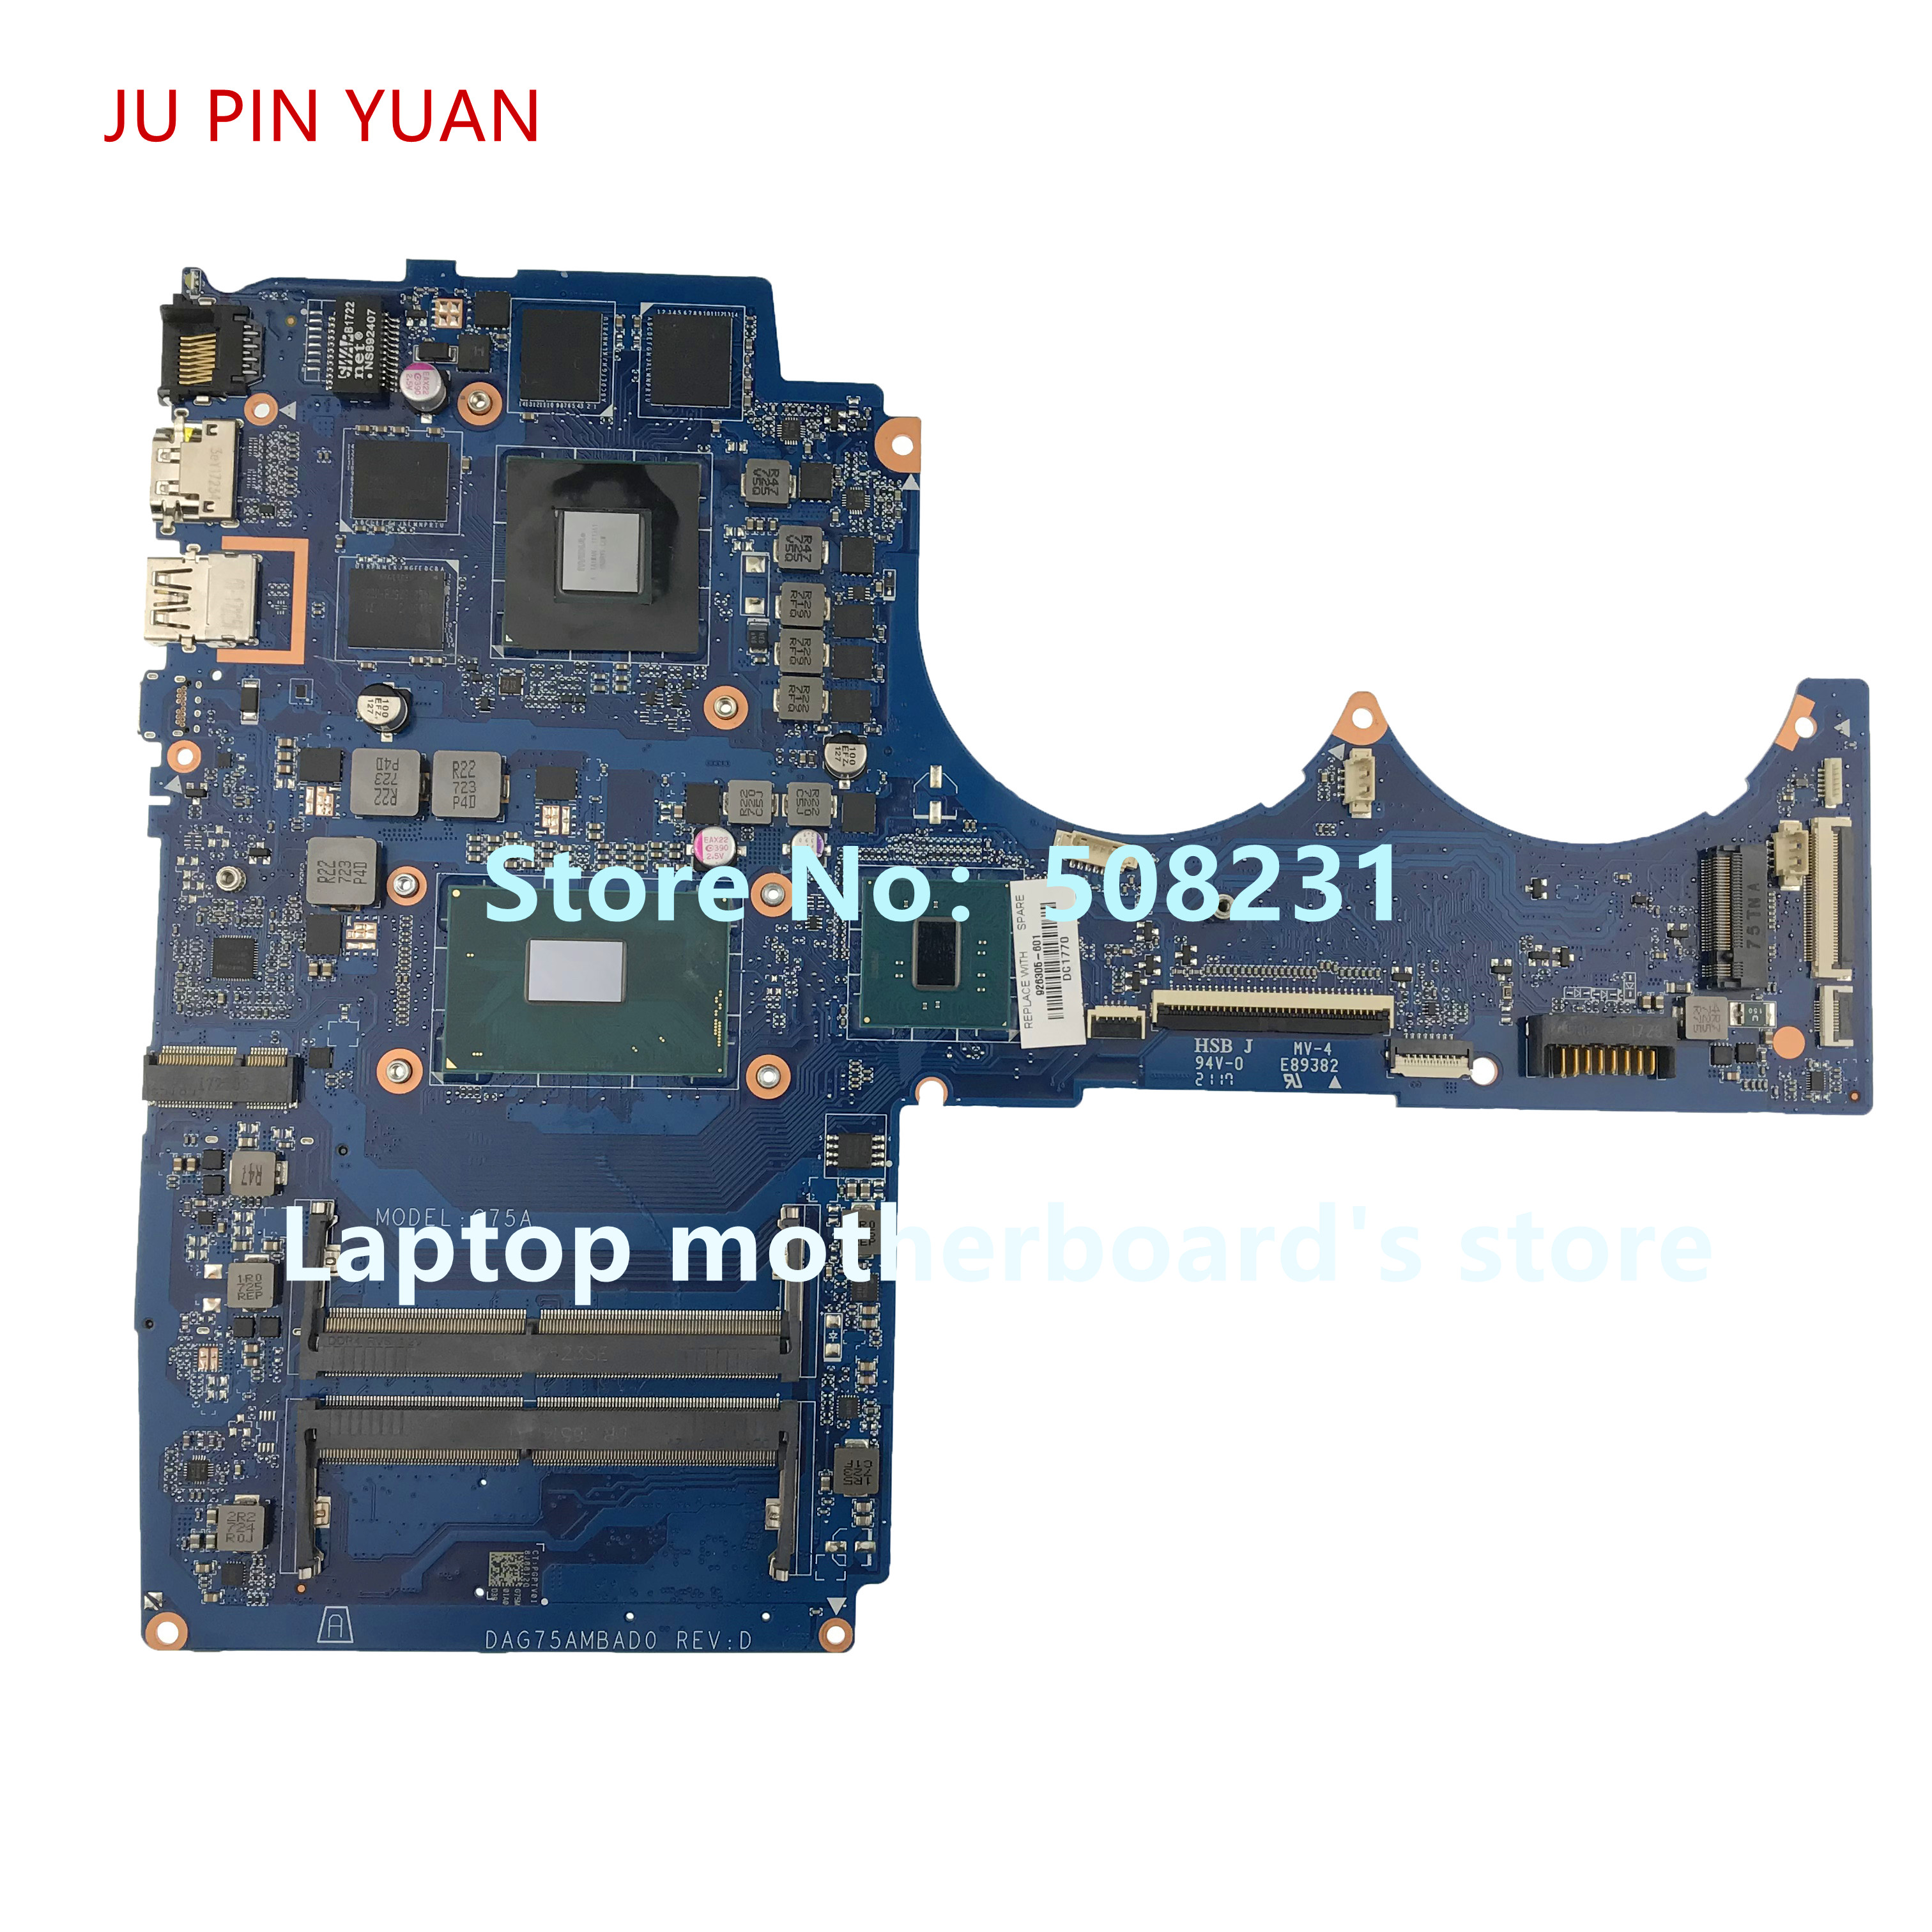 JU PIN YUAN 926305-601 G75A DAG75AMBAD0 For HP Pavilion Power Laptop 15-CB Laptop Motherboard GTX1050 4GB <font><b>i7</b></font>-<font><b>7700</b></font> fully Tested image